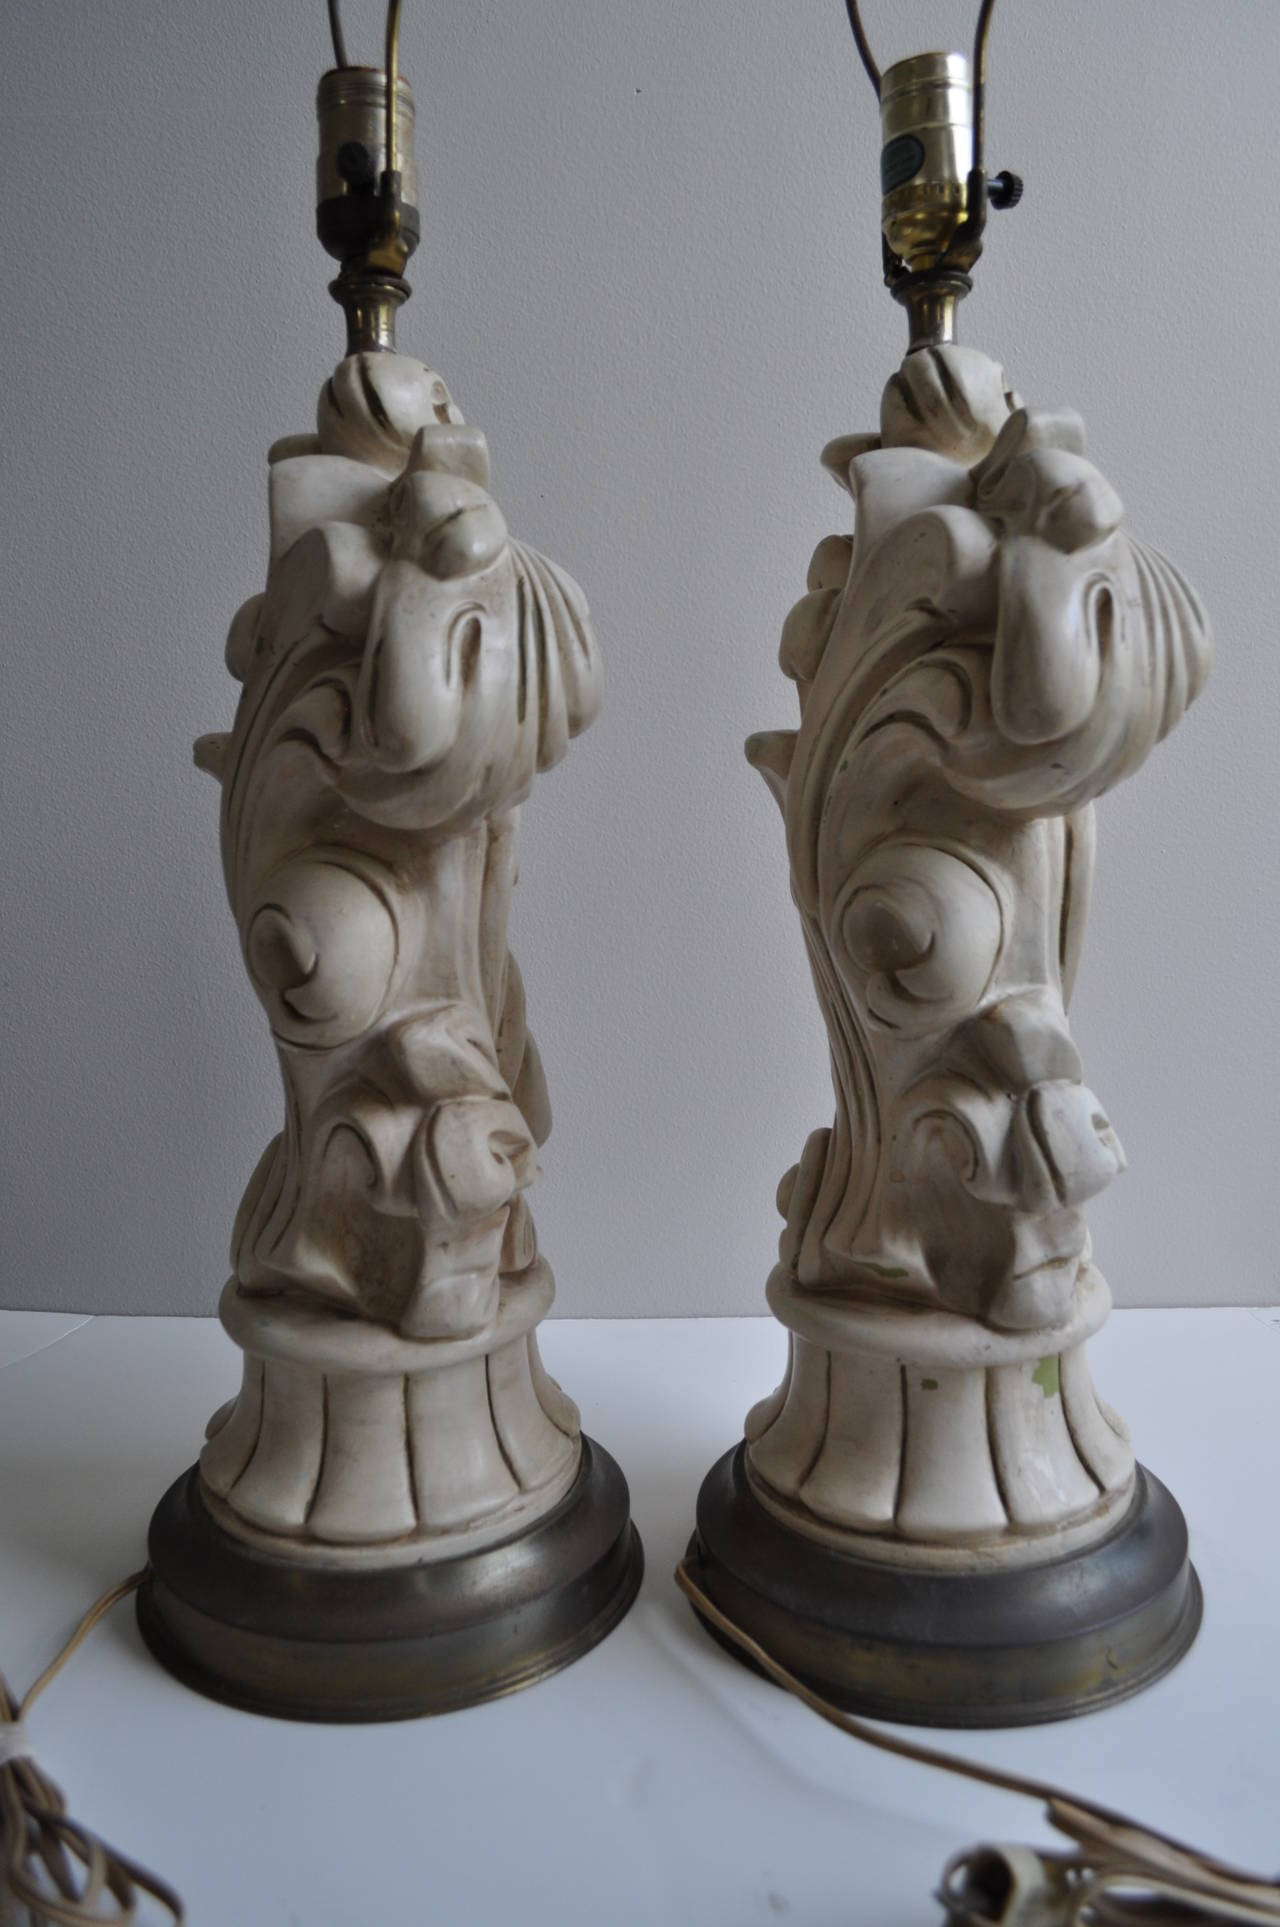 Mid-20th Century Serge Roche Style Hollywood Regency Chapman Plaster Sculptural Lamps, 1950s For Sale